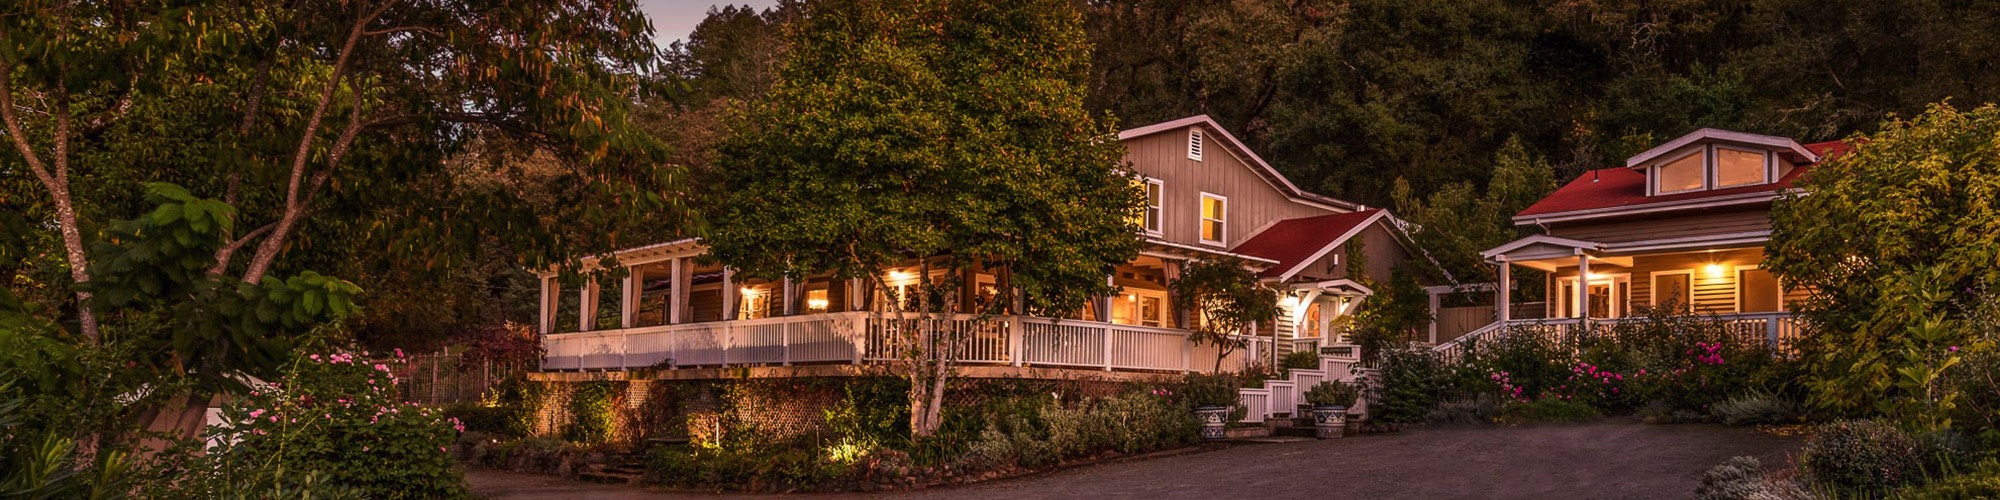 Welcome to the Meadowlark Country House and Resort in Napa Valley ...